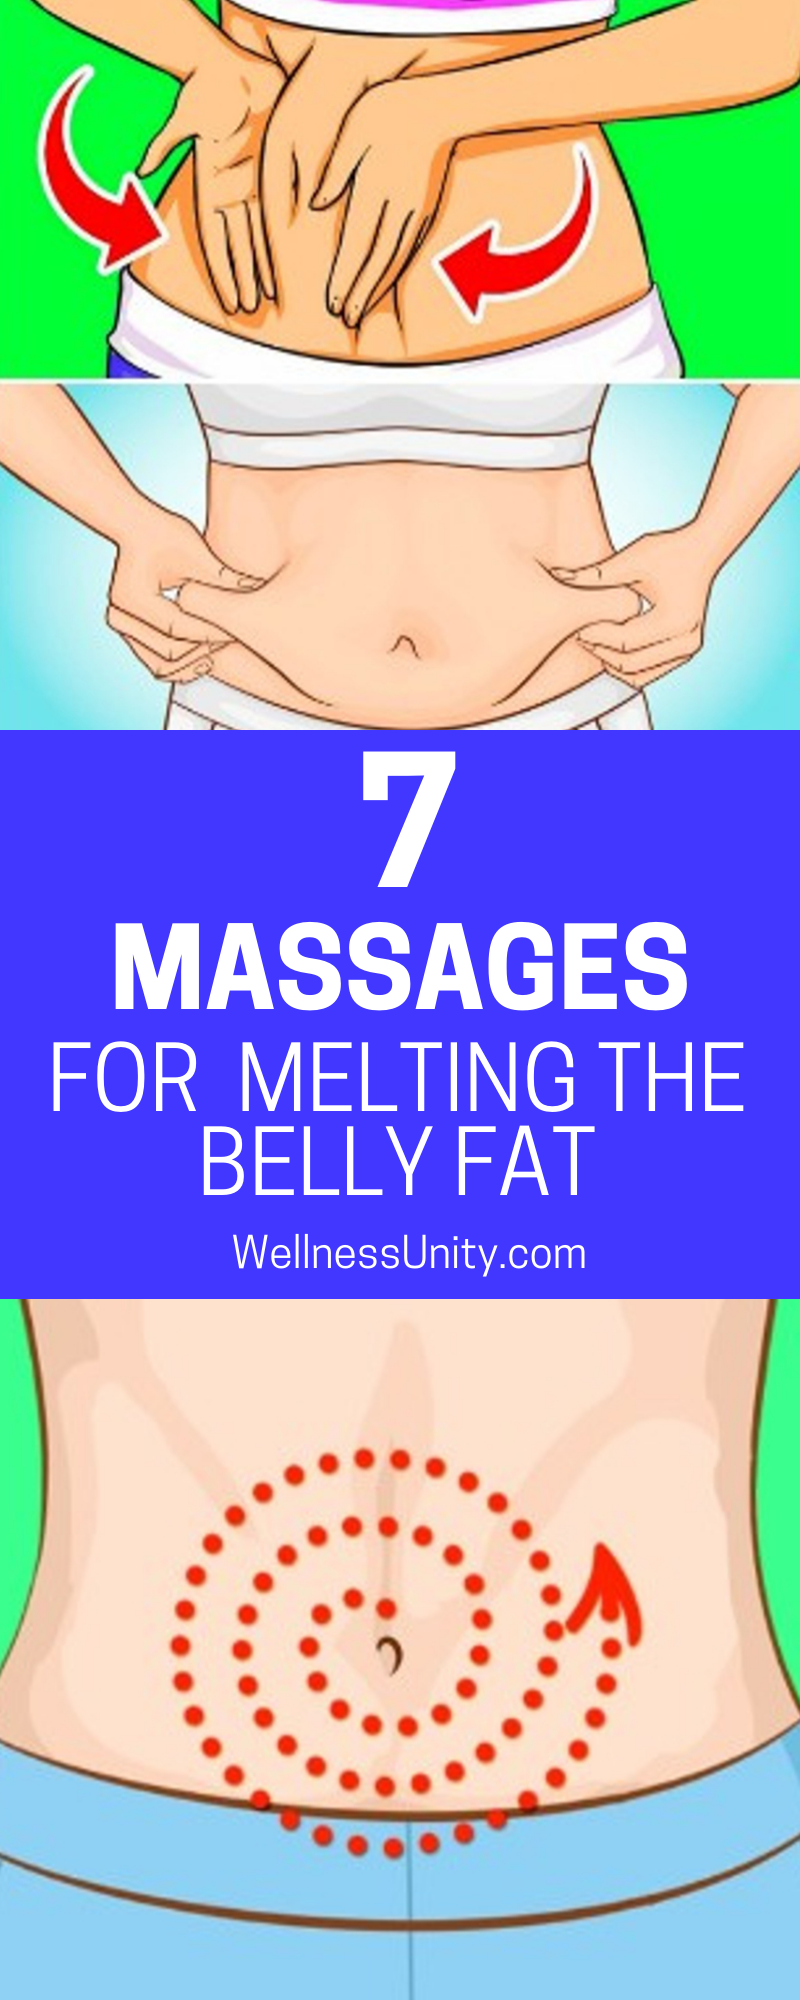 7 massages for  melting the belly fat